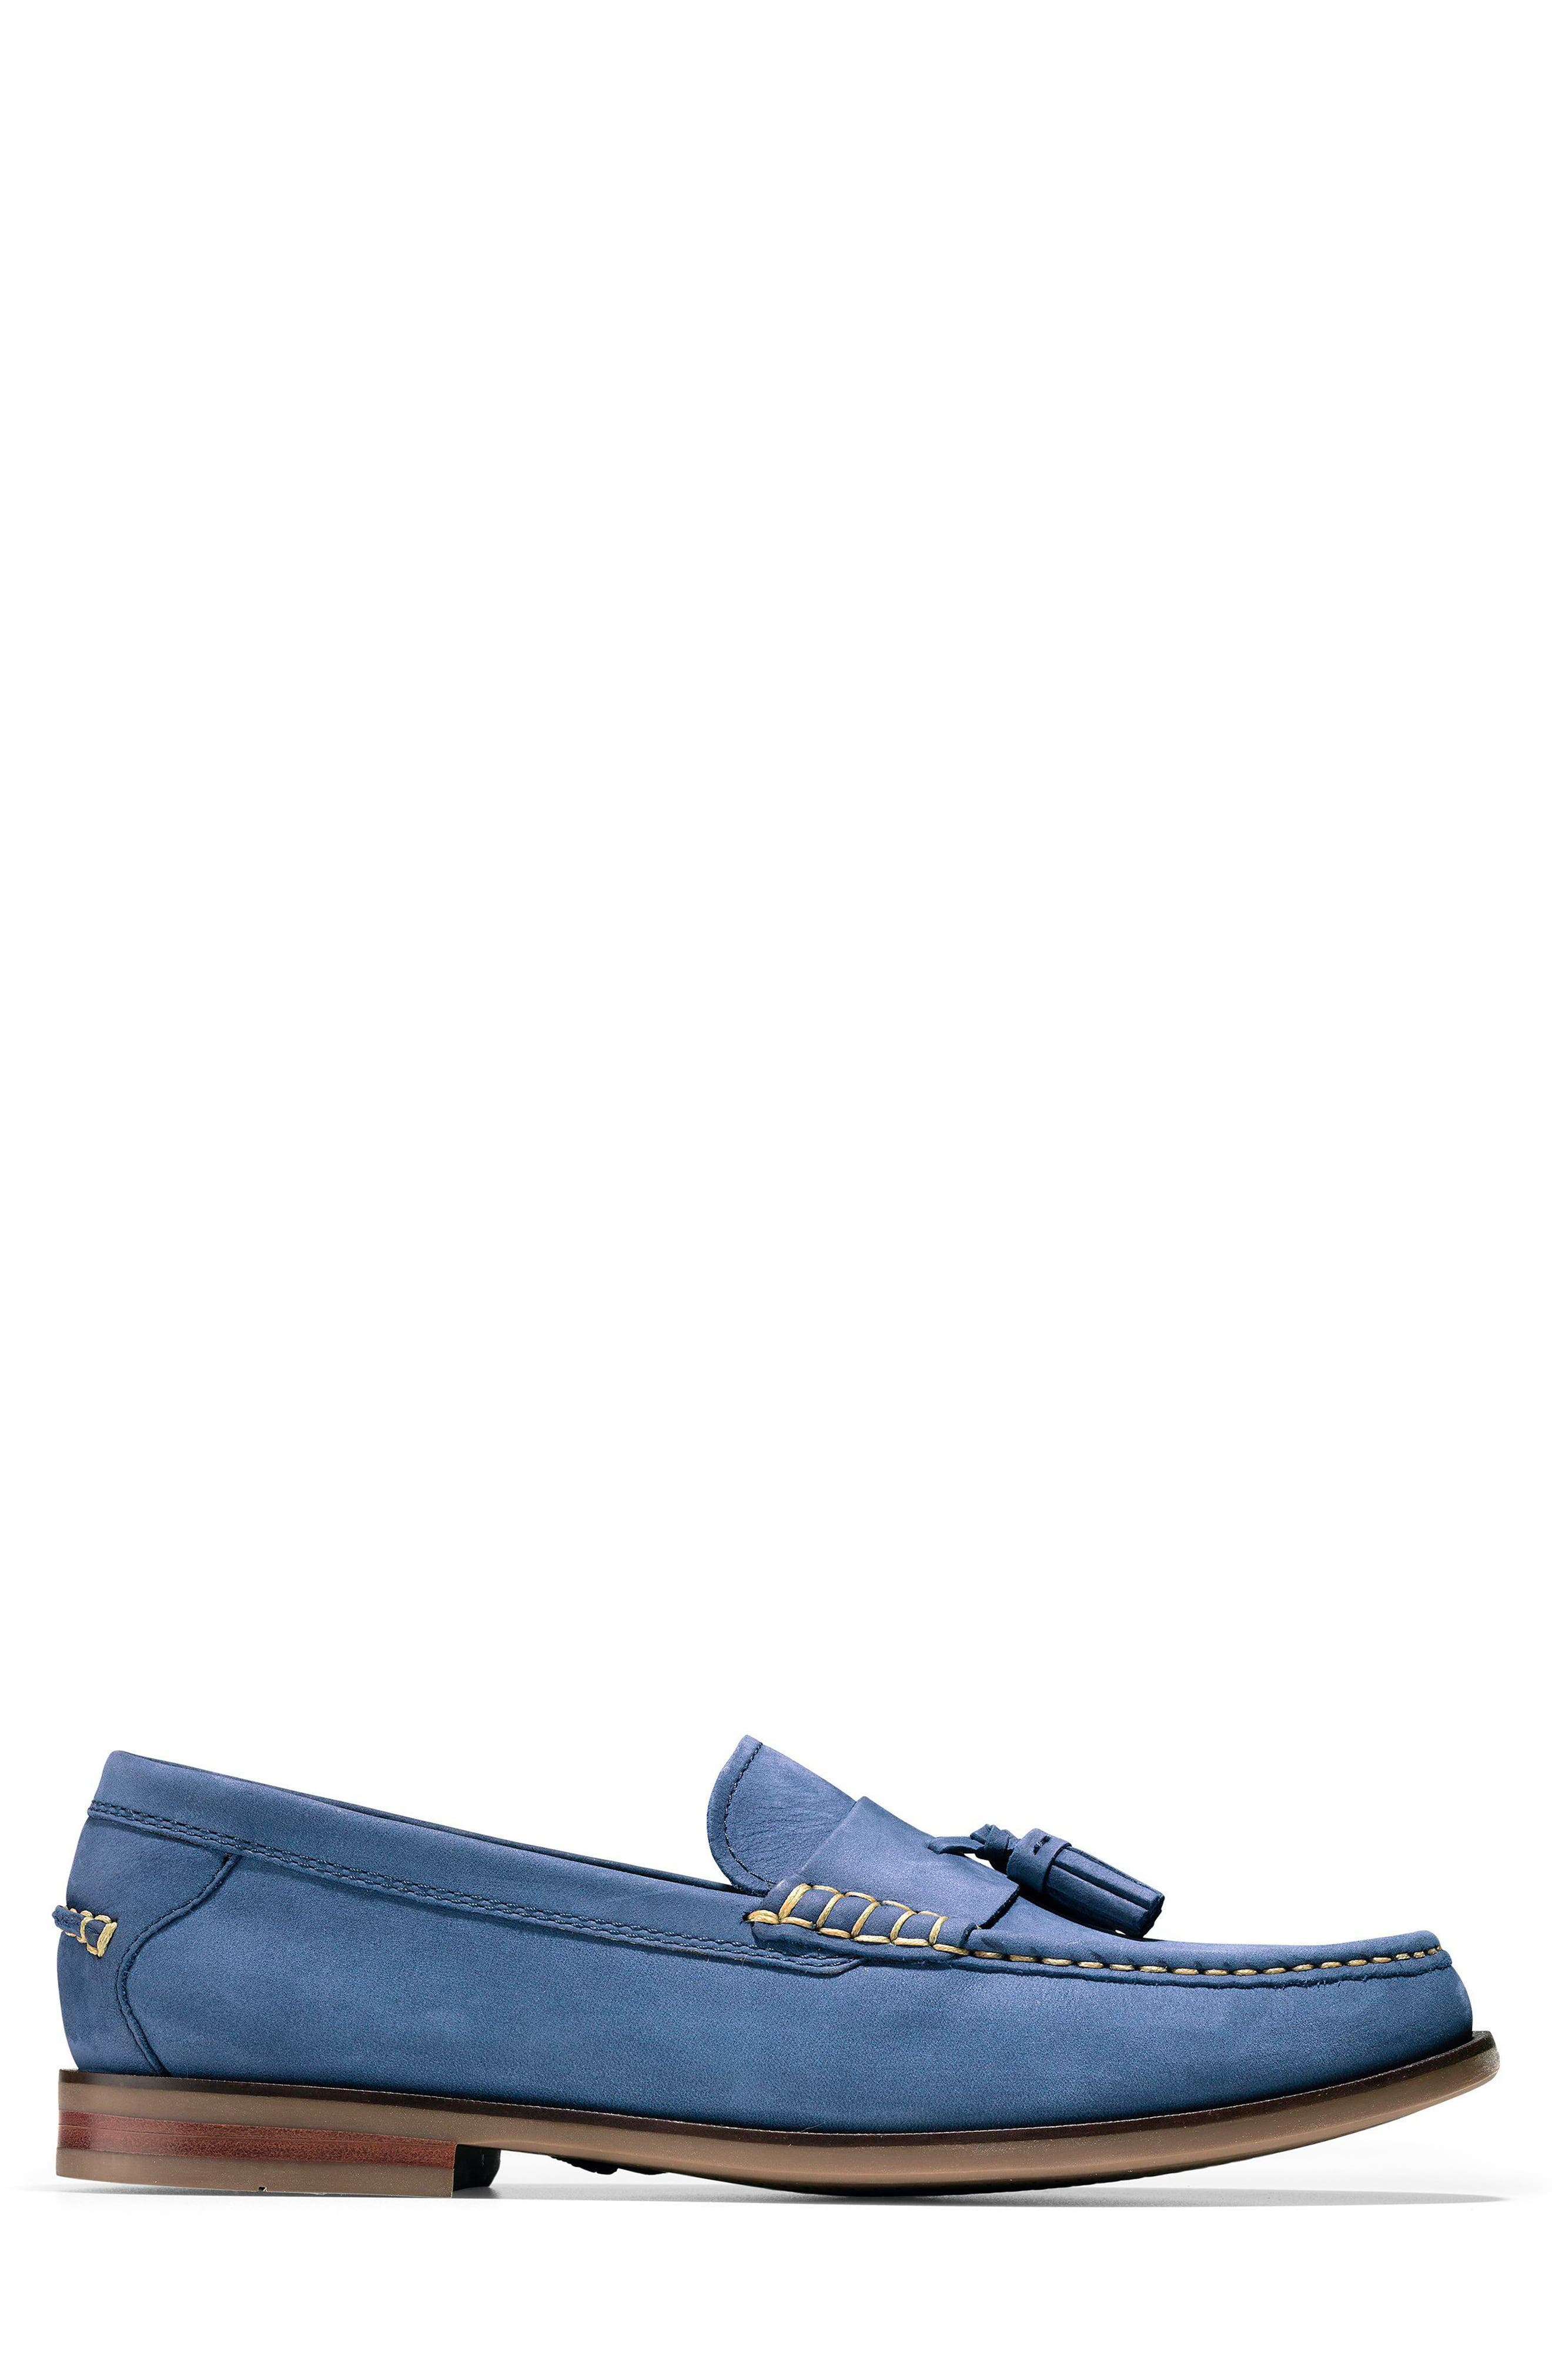 Pinch Friday Tassel Loafer,                             Alternate thumbnail 3, color,                             400